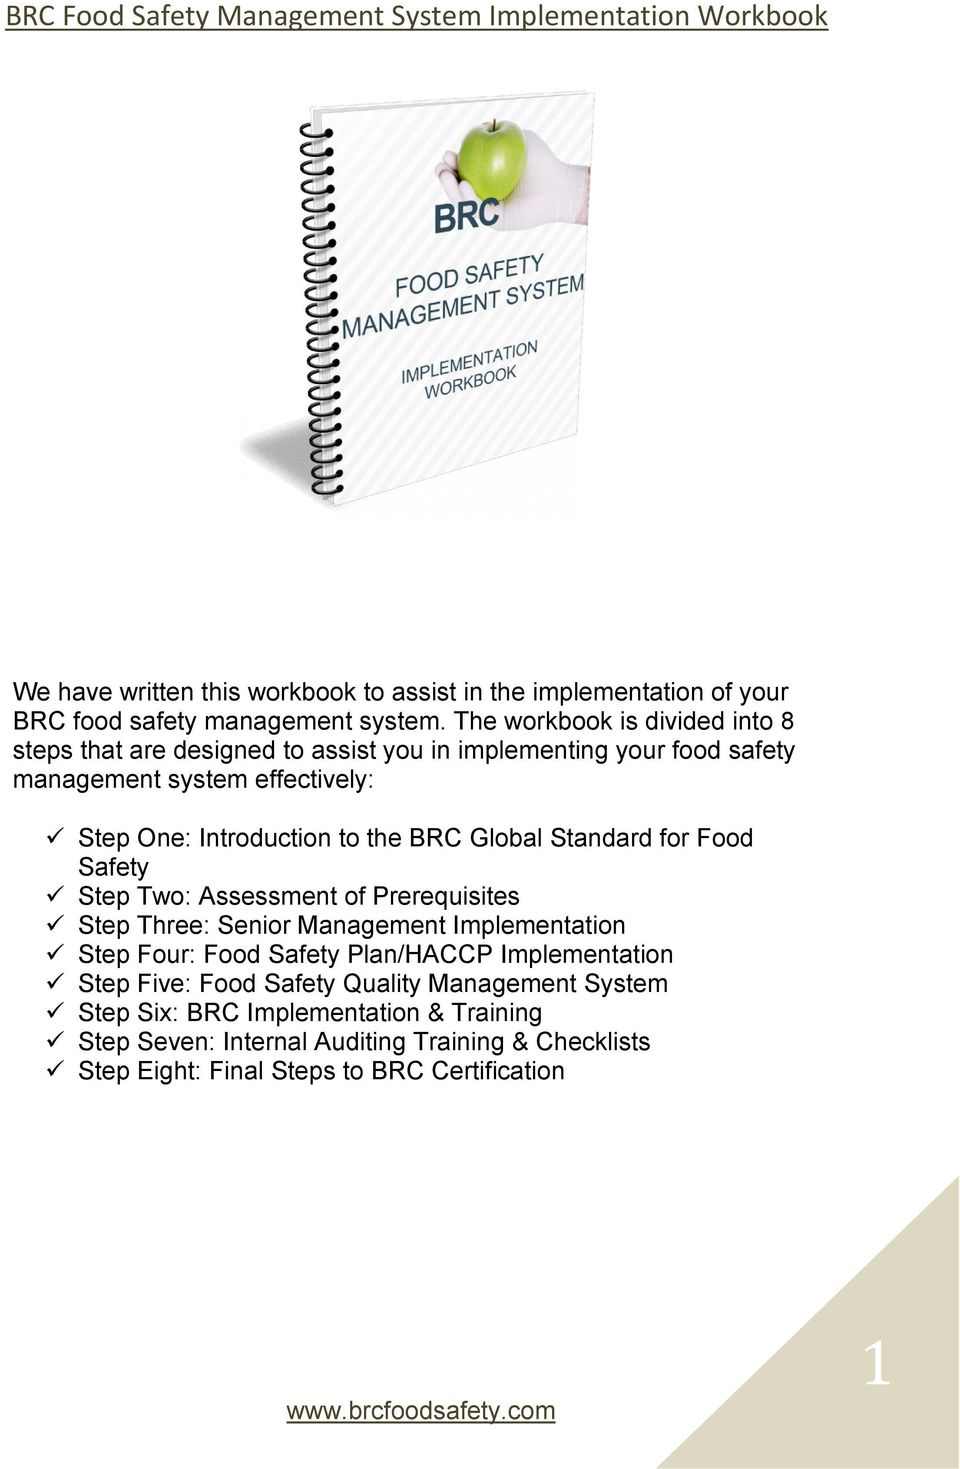 to the BRC Global Standard for Food Safety Step Two: Assessment of Prerequisites Step Three: Senior Management Implementation Step Four: Food Safety